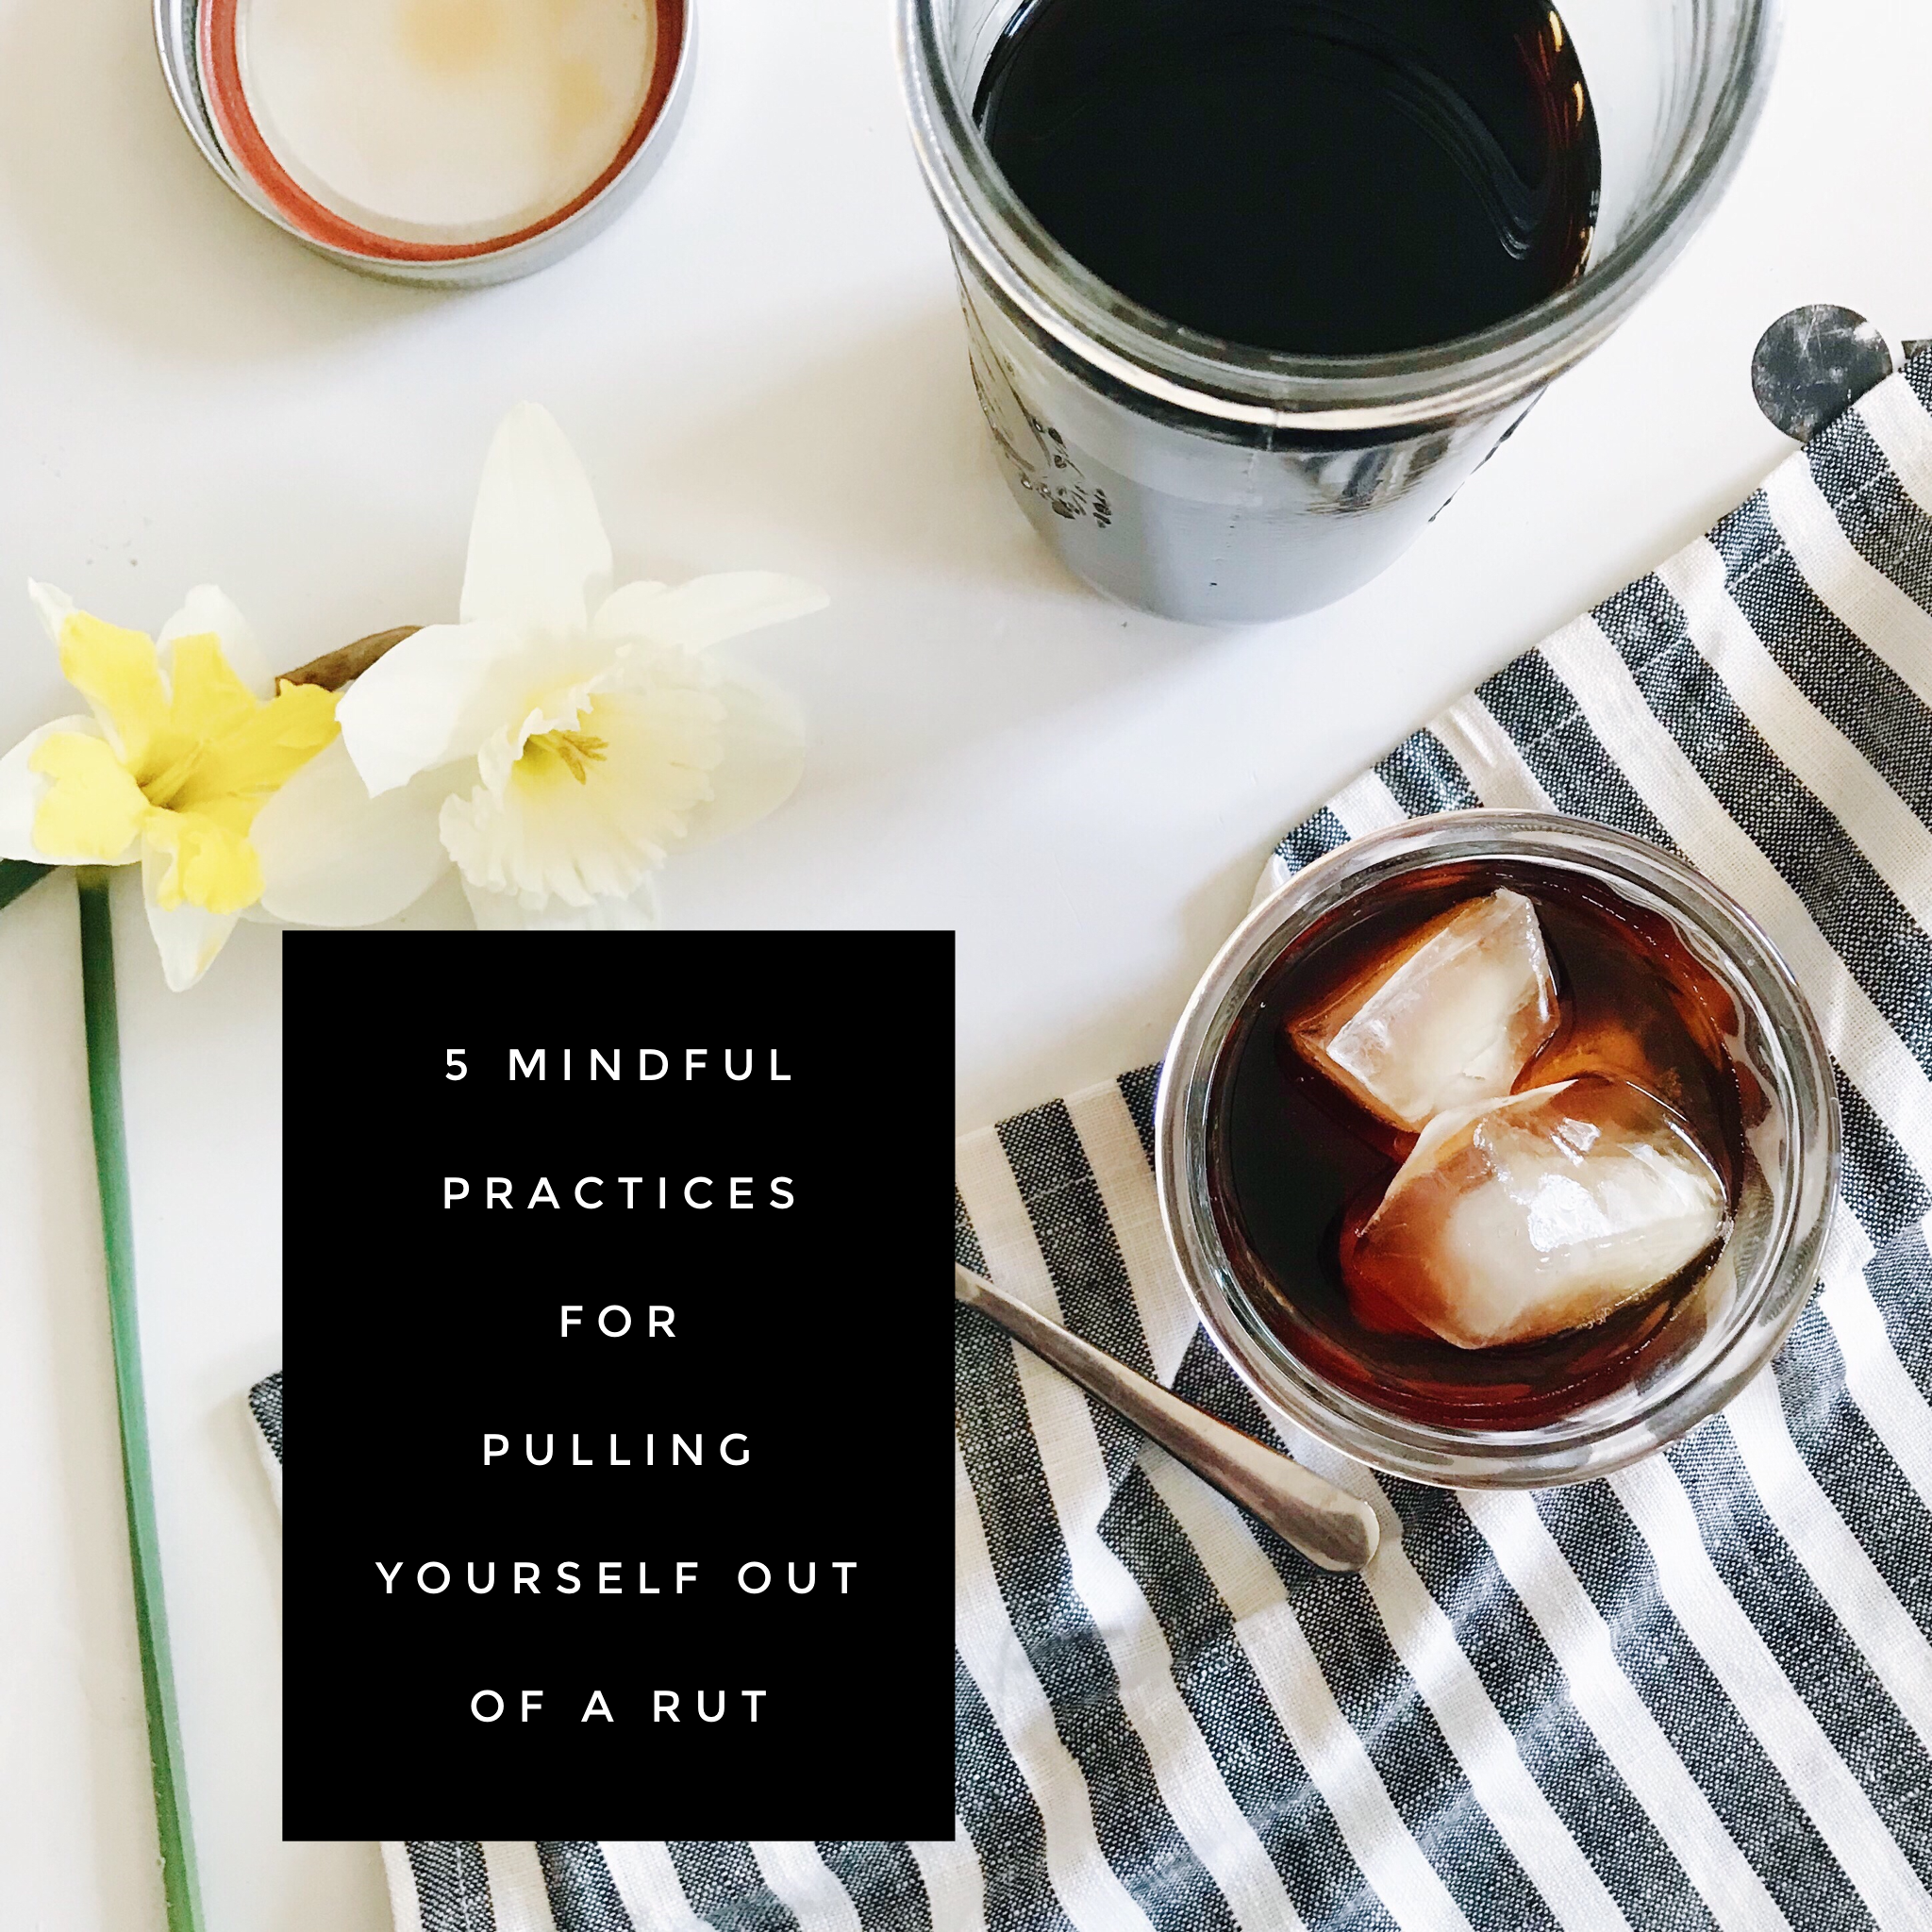 5 Mindful Practices for Pulling Yourself Out of a Rut at Josie Feather Blog